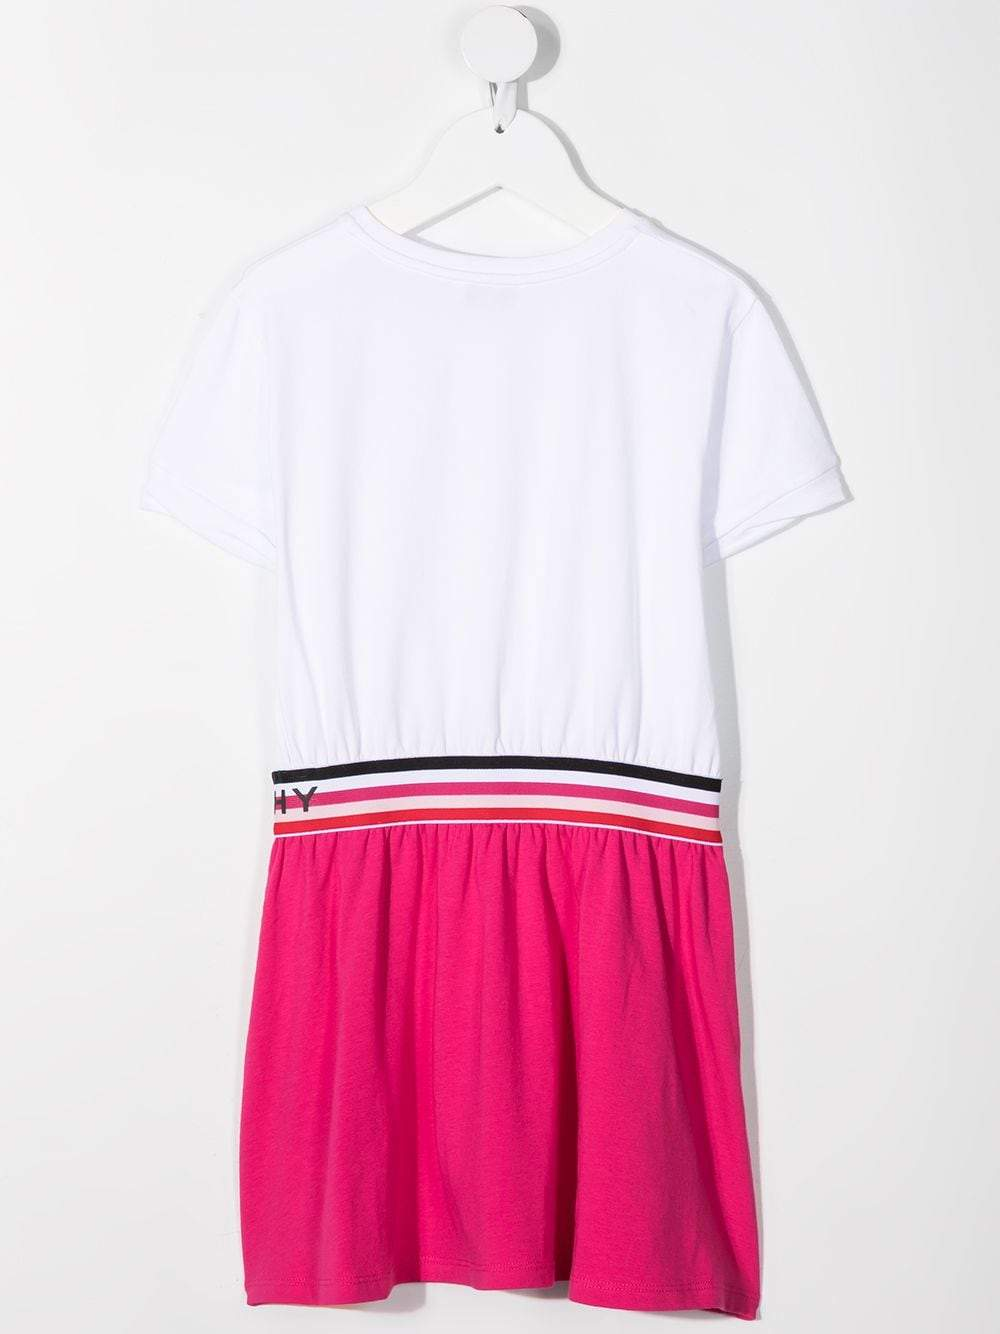 GIVENCHY KIDS Logo tape colour-block T-shirt dress Pink/White